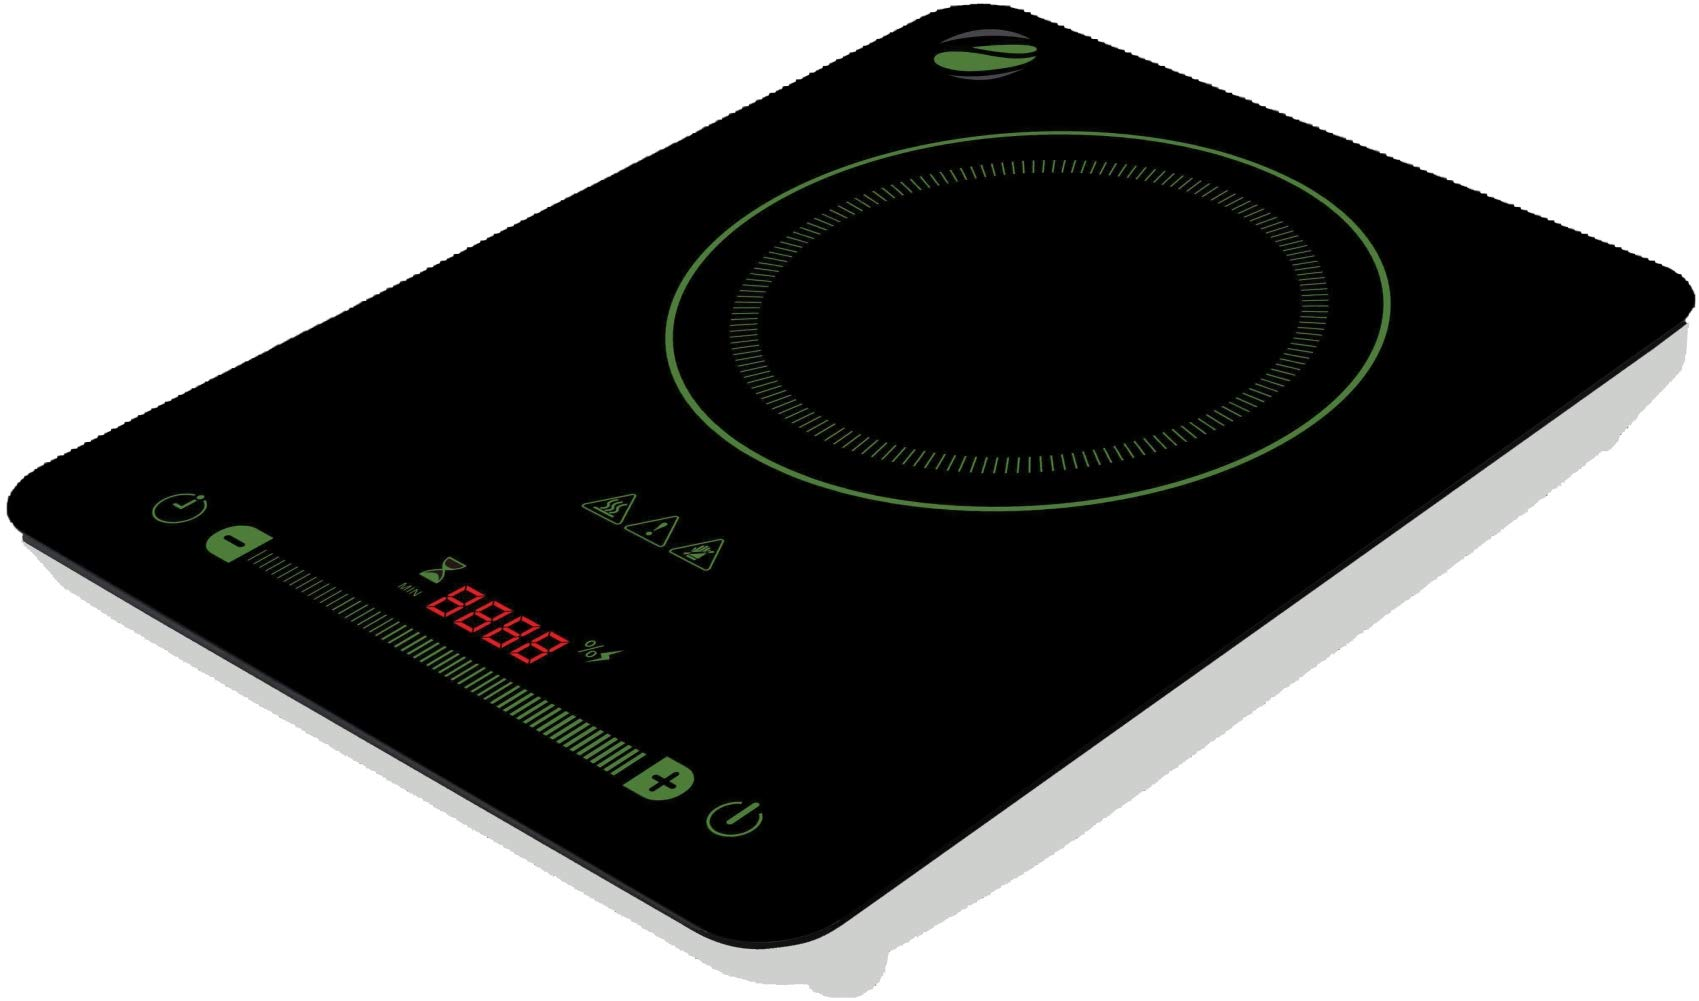 (New 2018 Model) Eco4us - Induction Cooktop with 10 Temperature Levels and Digital Touch Controls. Safe & Easy To Use